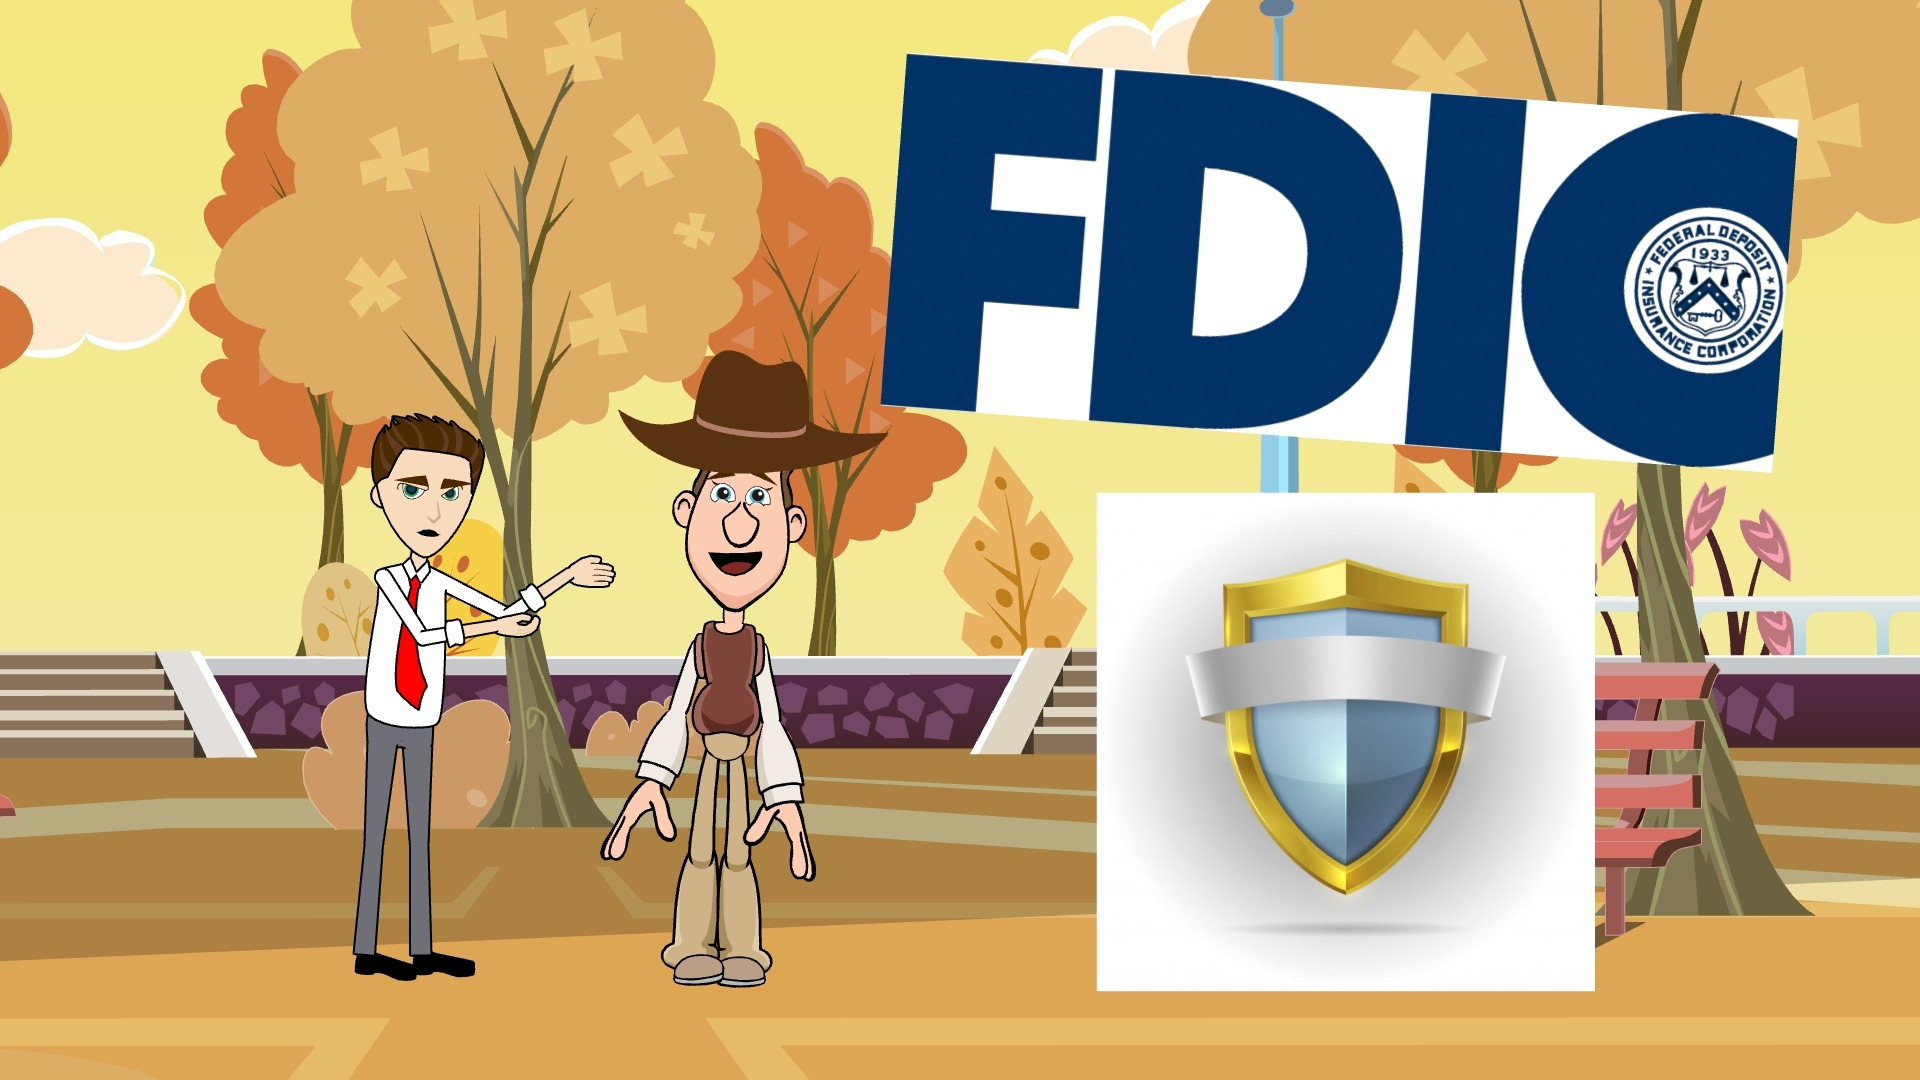 FDIC - FDIC Insured - Federal Deposit Insurance Corporation